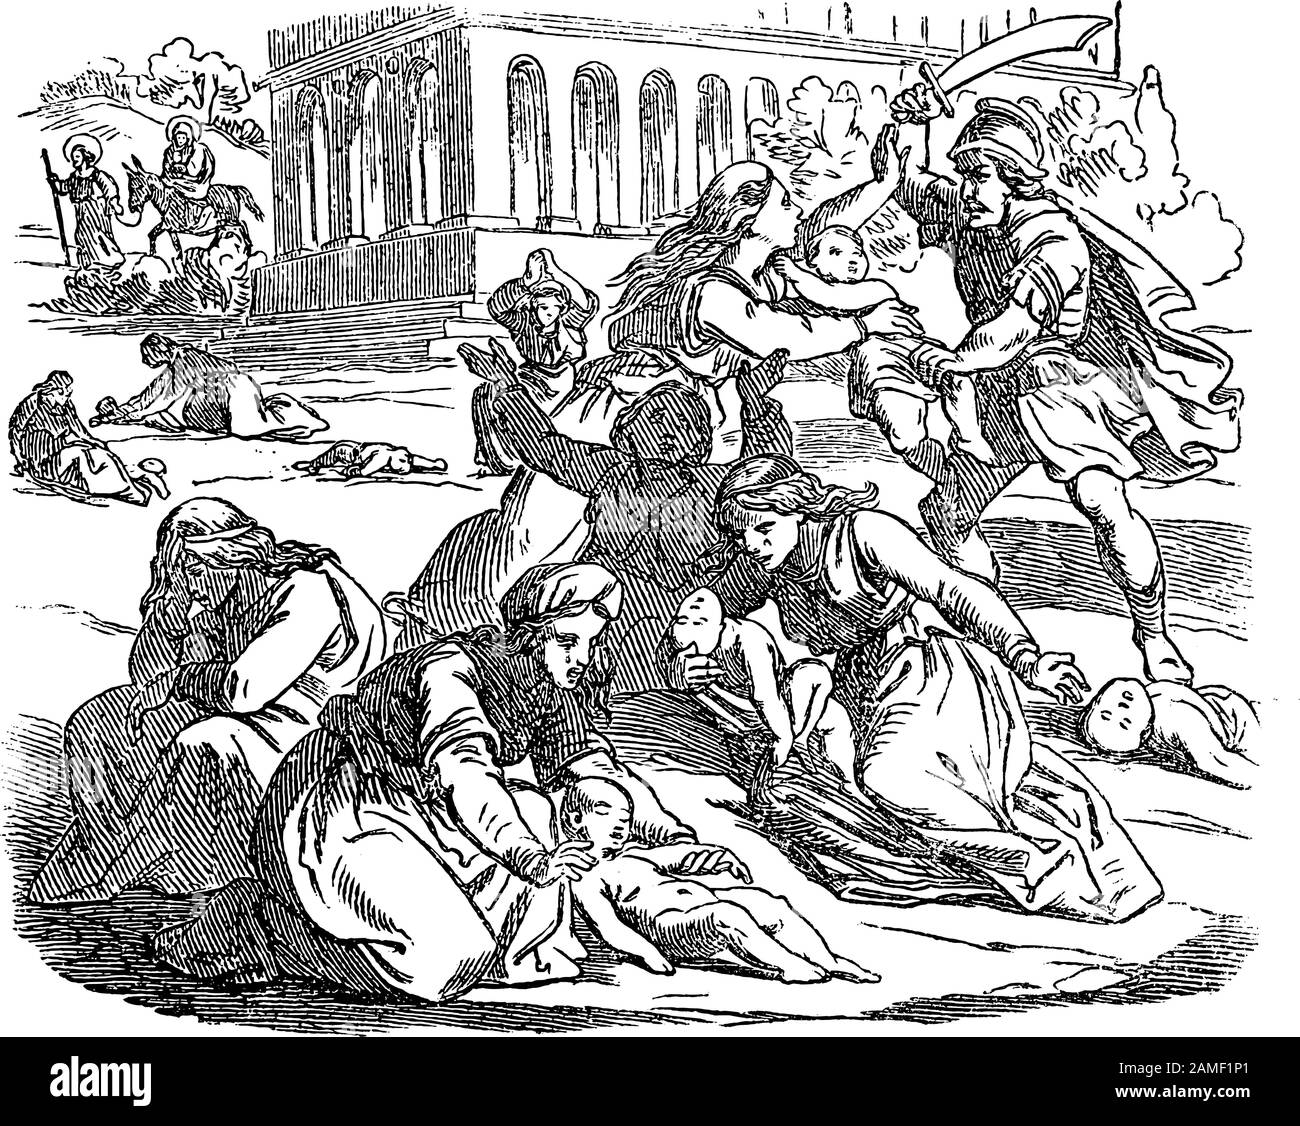 Vintage drawing or engraving of biblical story of massacre of innocents. Soldiers are killing babies or infants, mothers are crying.Bible, New Testament,Matthew 2. Biblische Geschichte , Germany 1859. Stock Vector